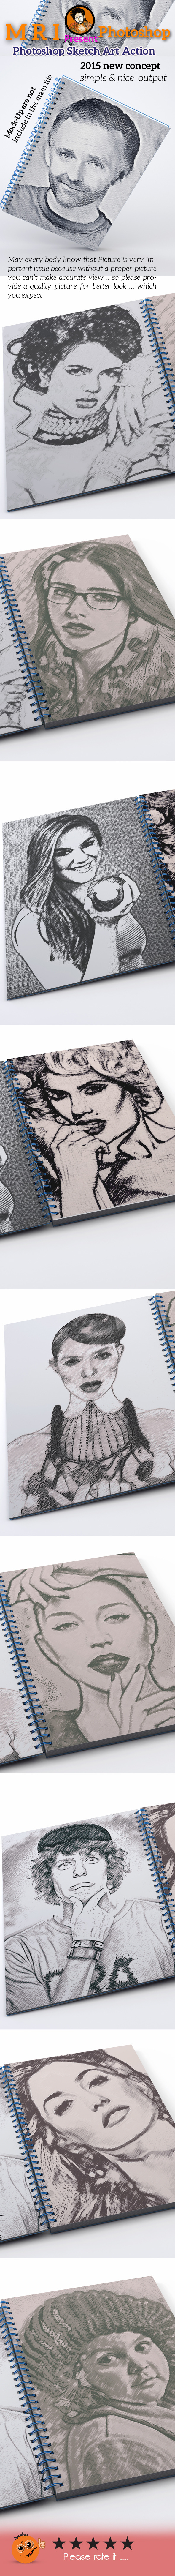 Photoshop Sketch Art Action - Photo Effects Actions